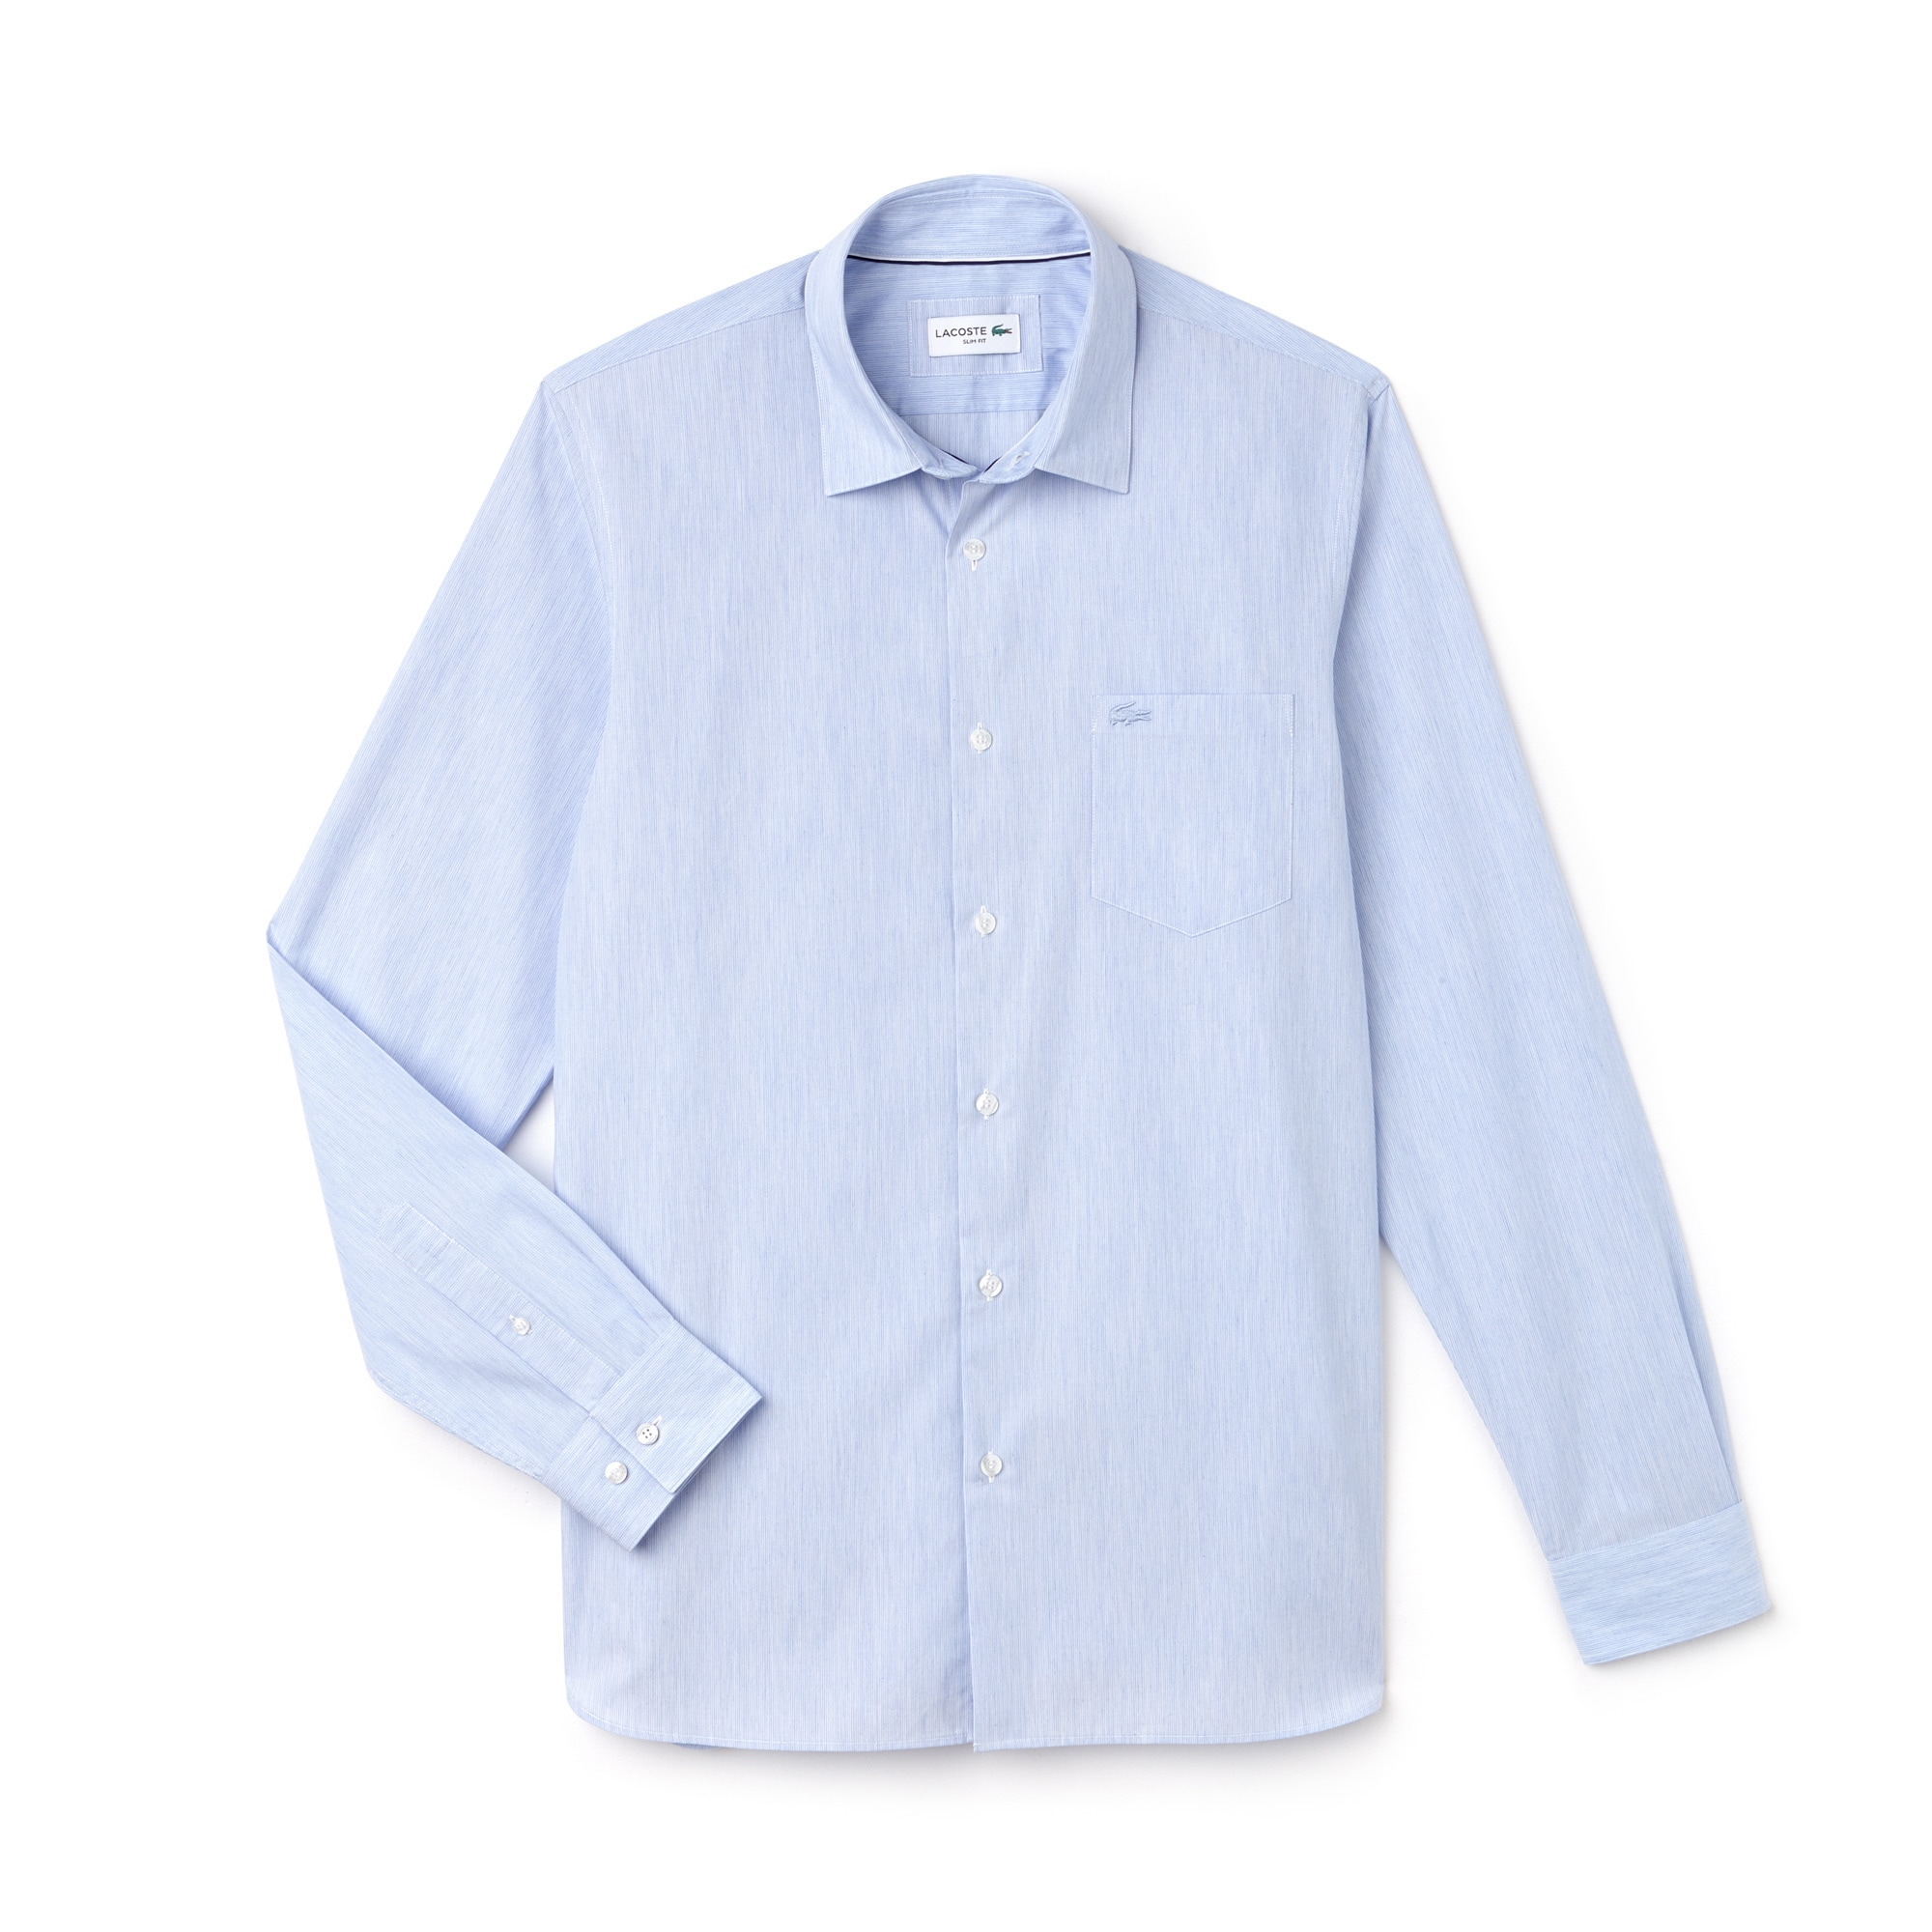 Men's Slim Fit Cotton Poplin Shirt